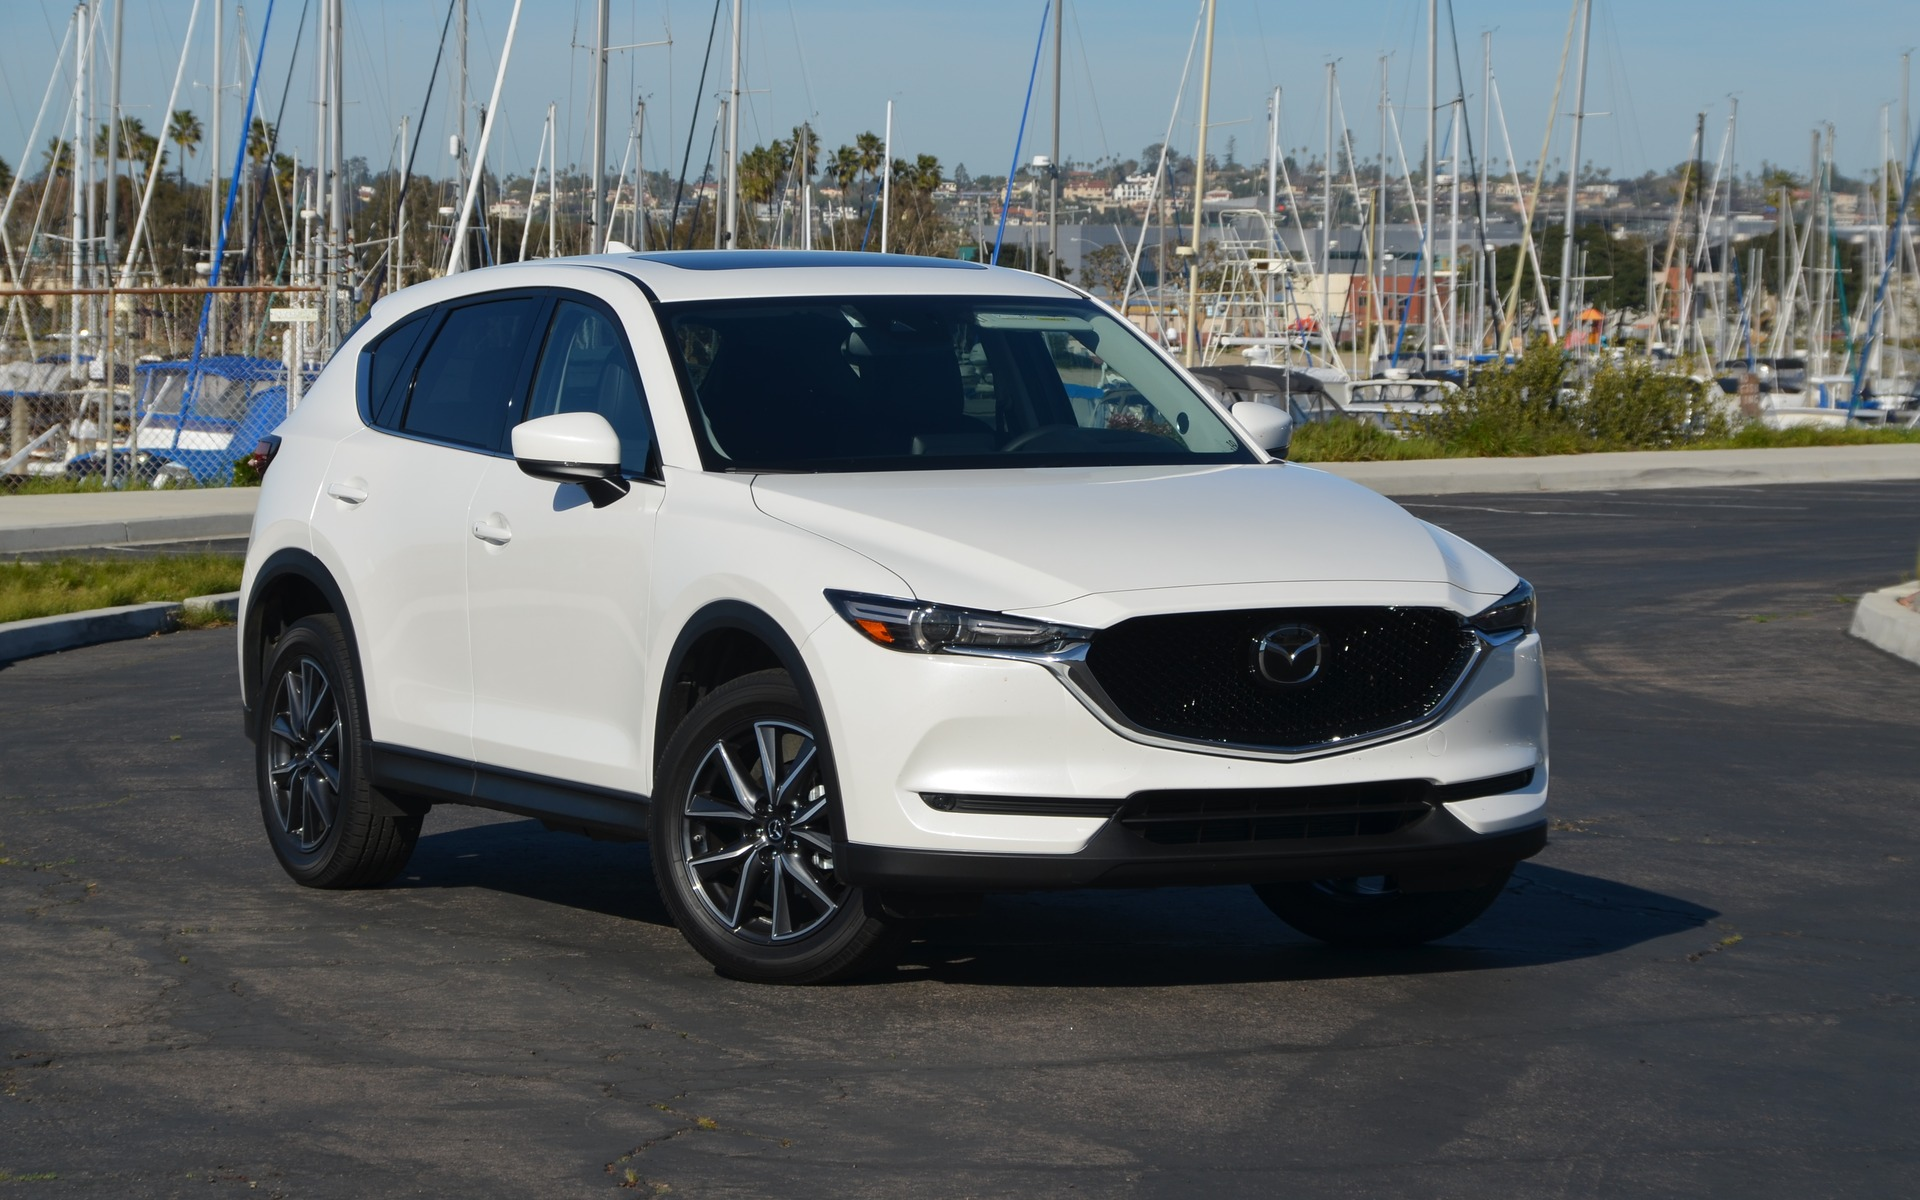 2017 mazda cx-5 changes